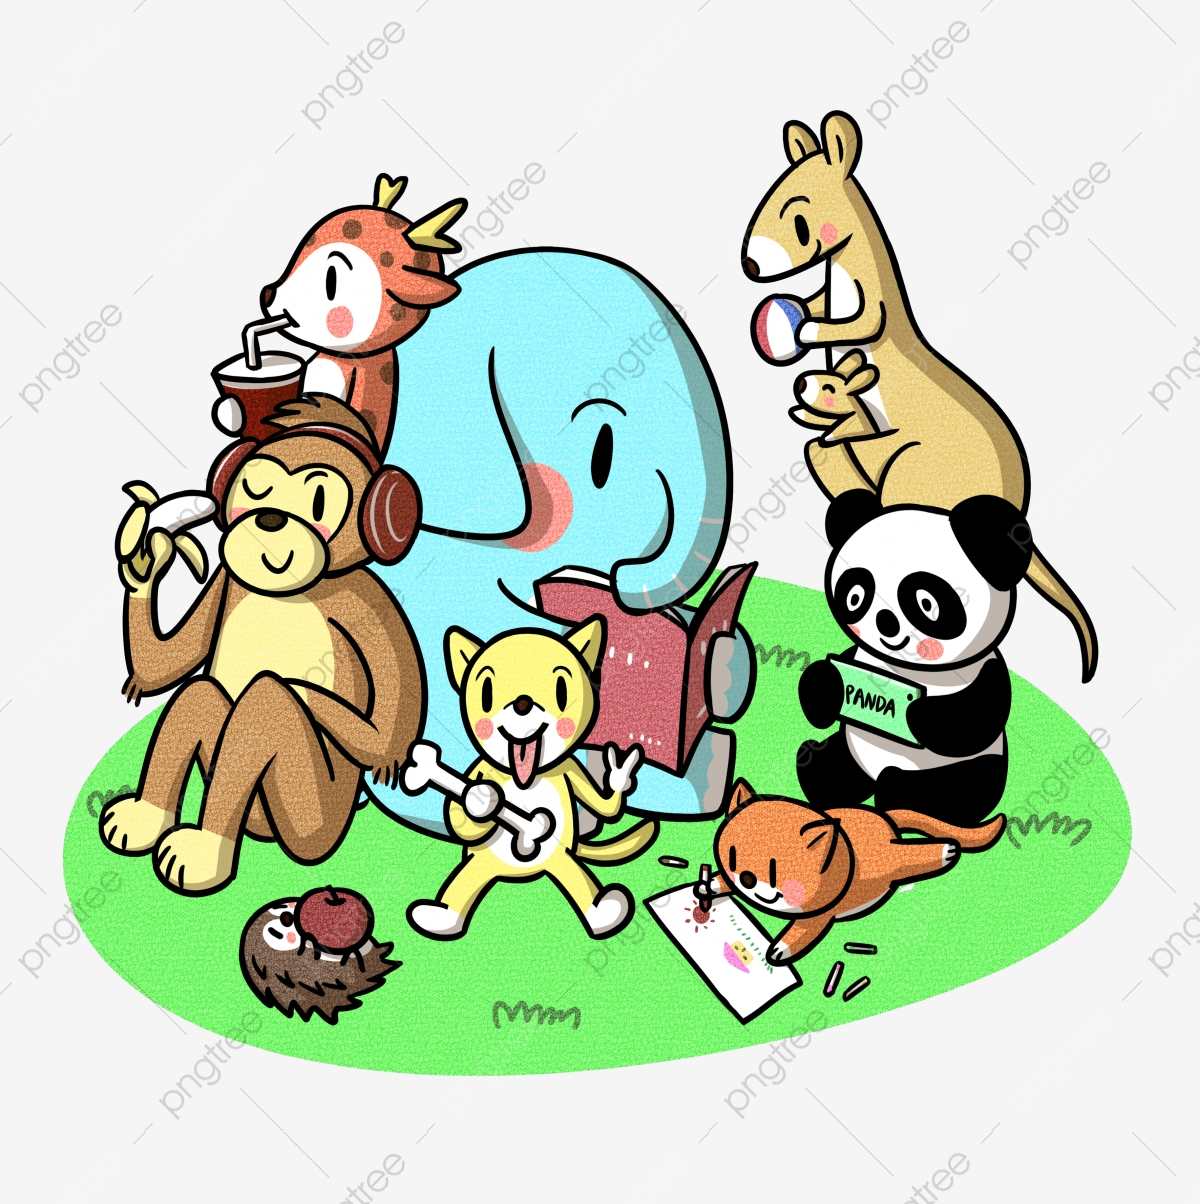 World Animal Day Animal Cartoon Cartoon Animals Animal World Animal Cartoon Grassland Png Transparent Clipart Image And Psd File For Free Download